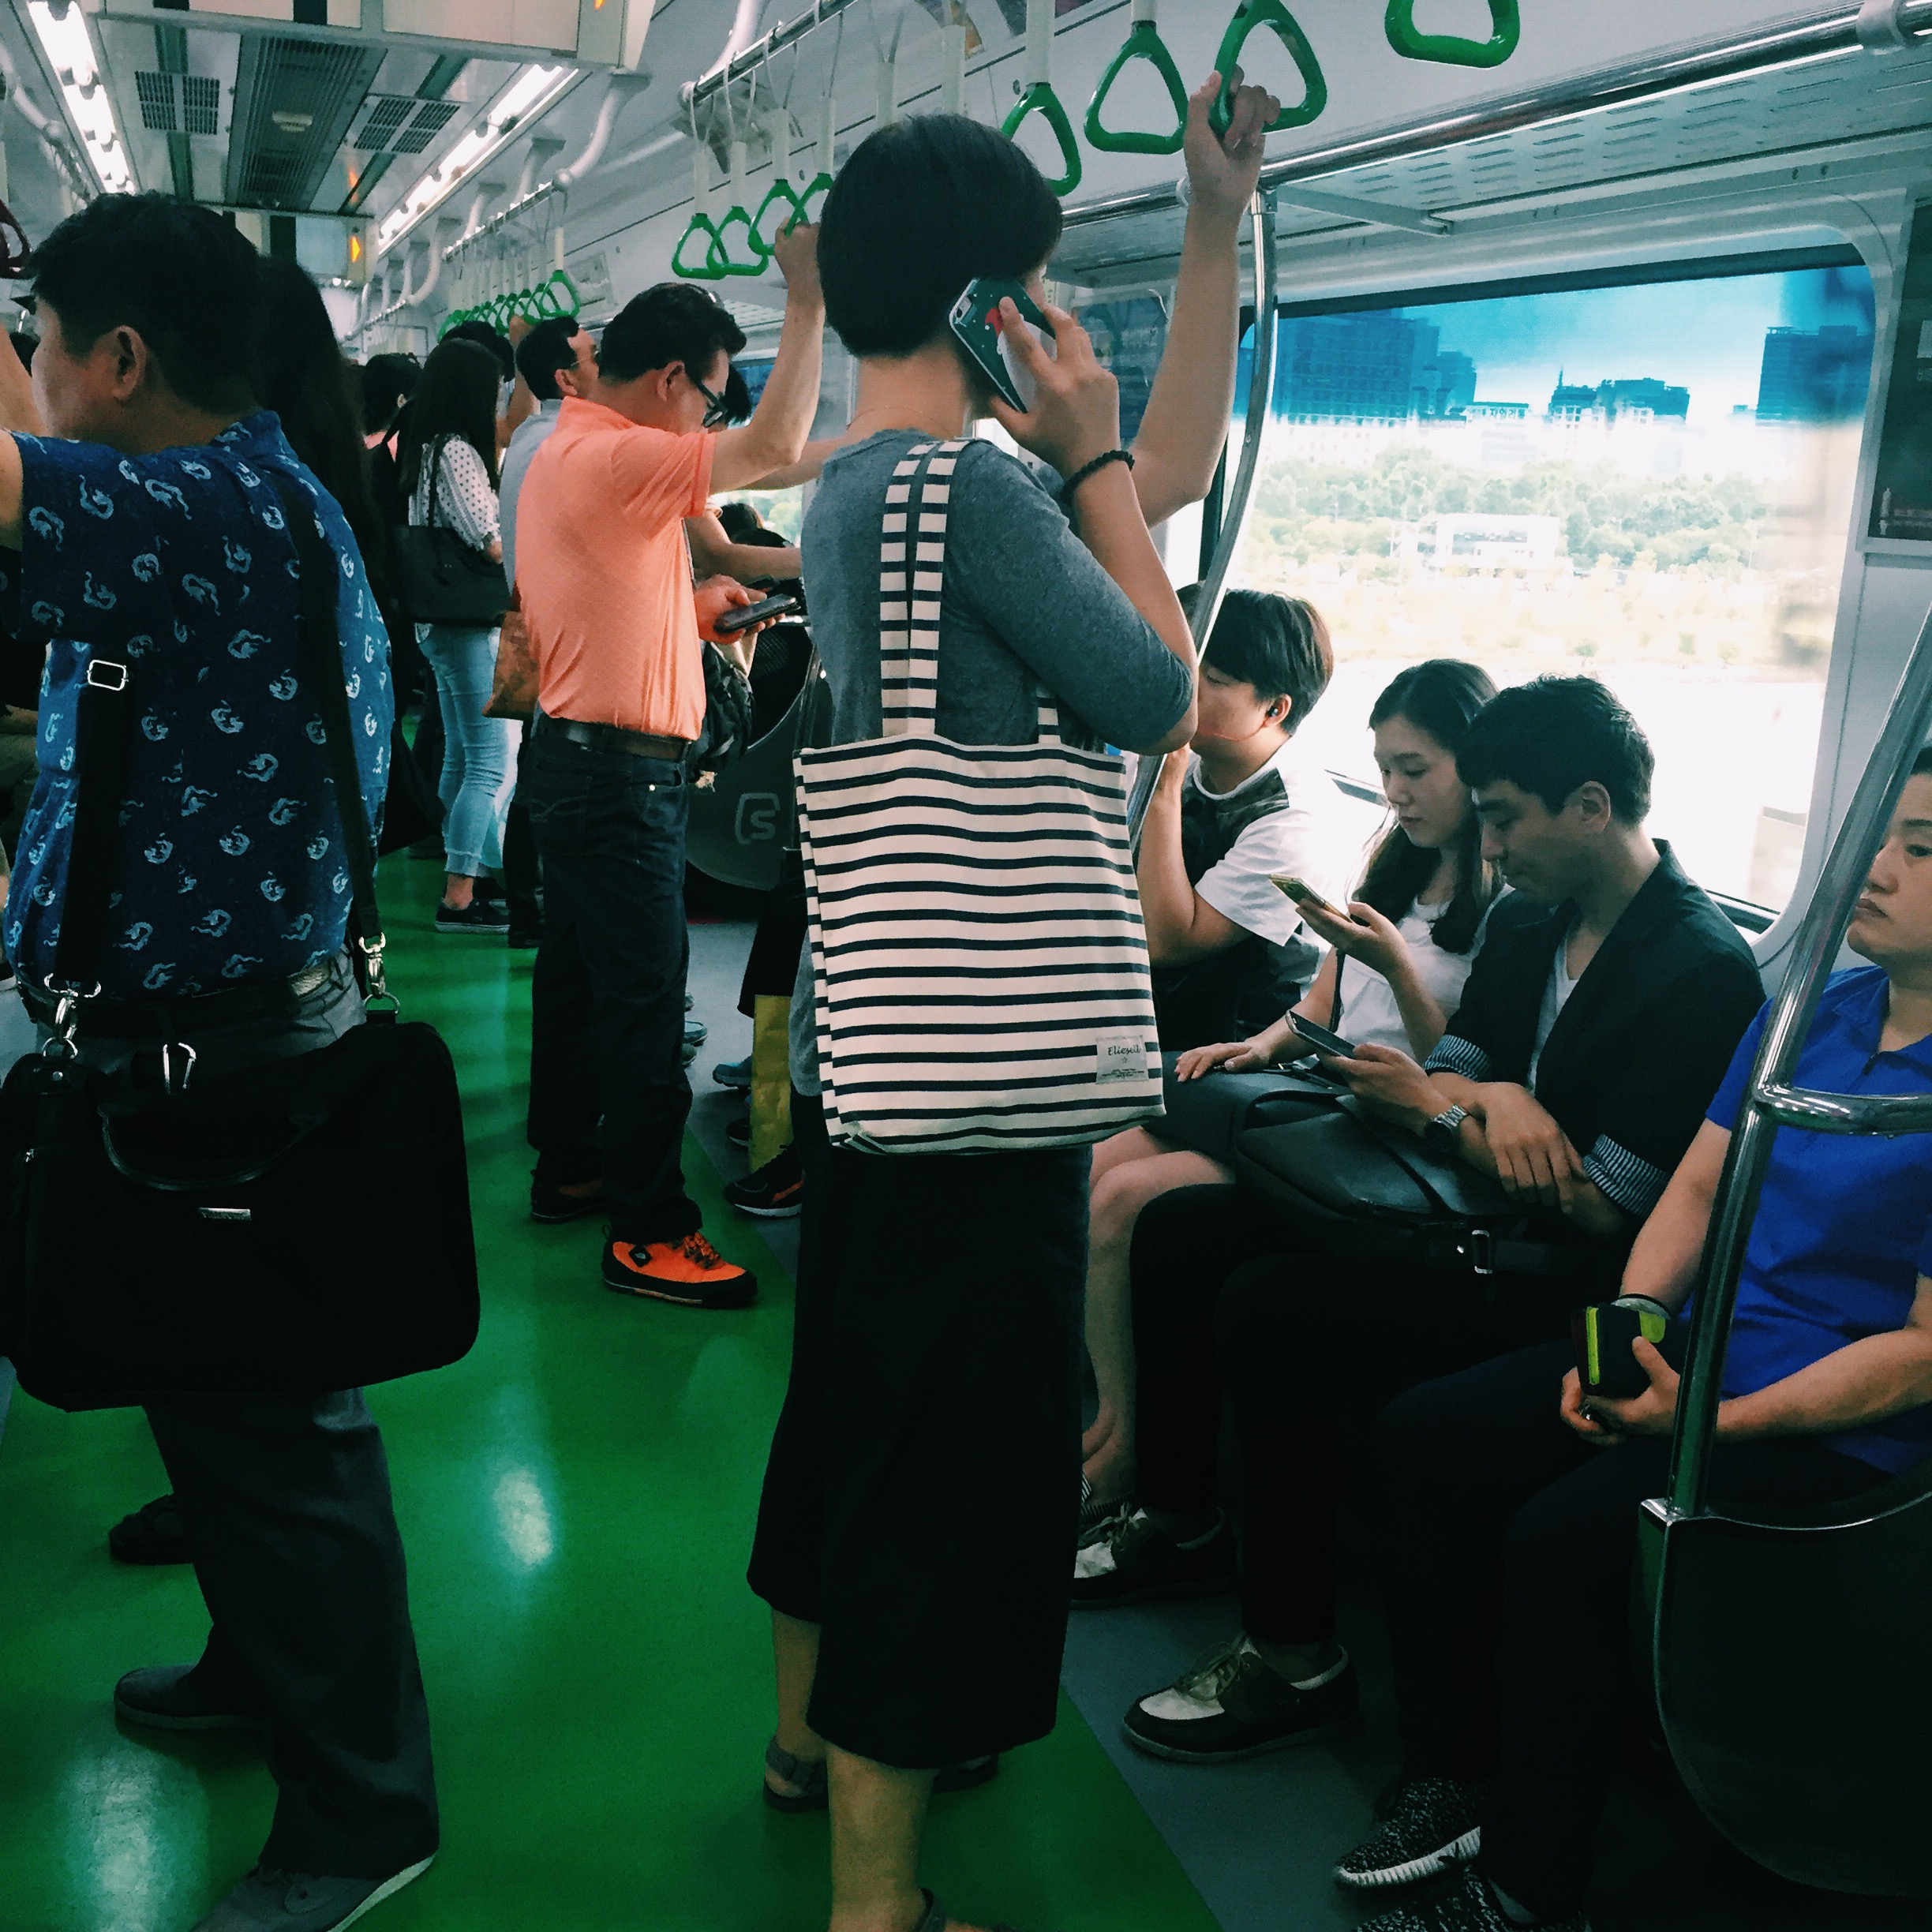 The green (and very clean) Seoul subway system.